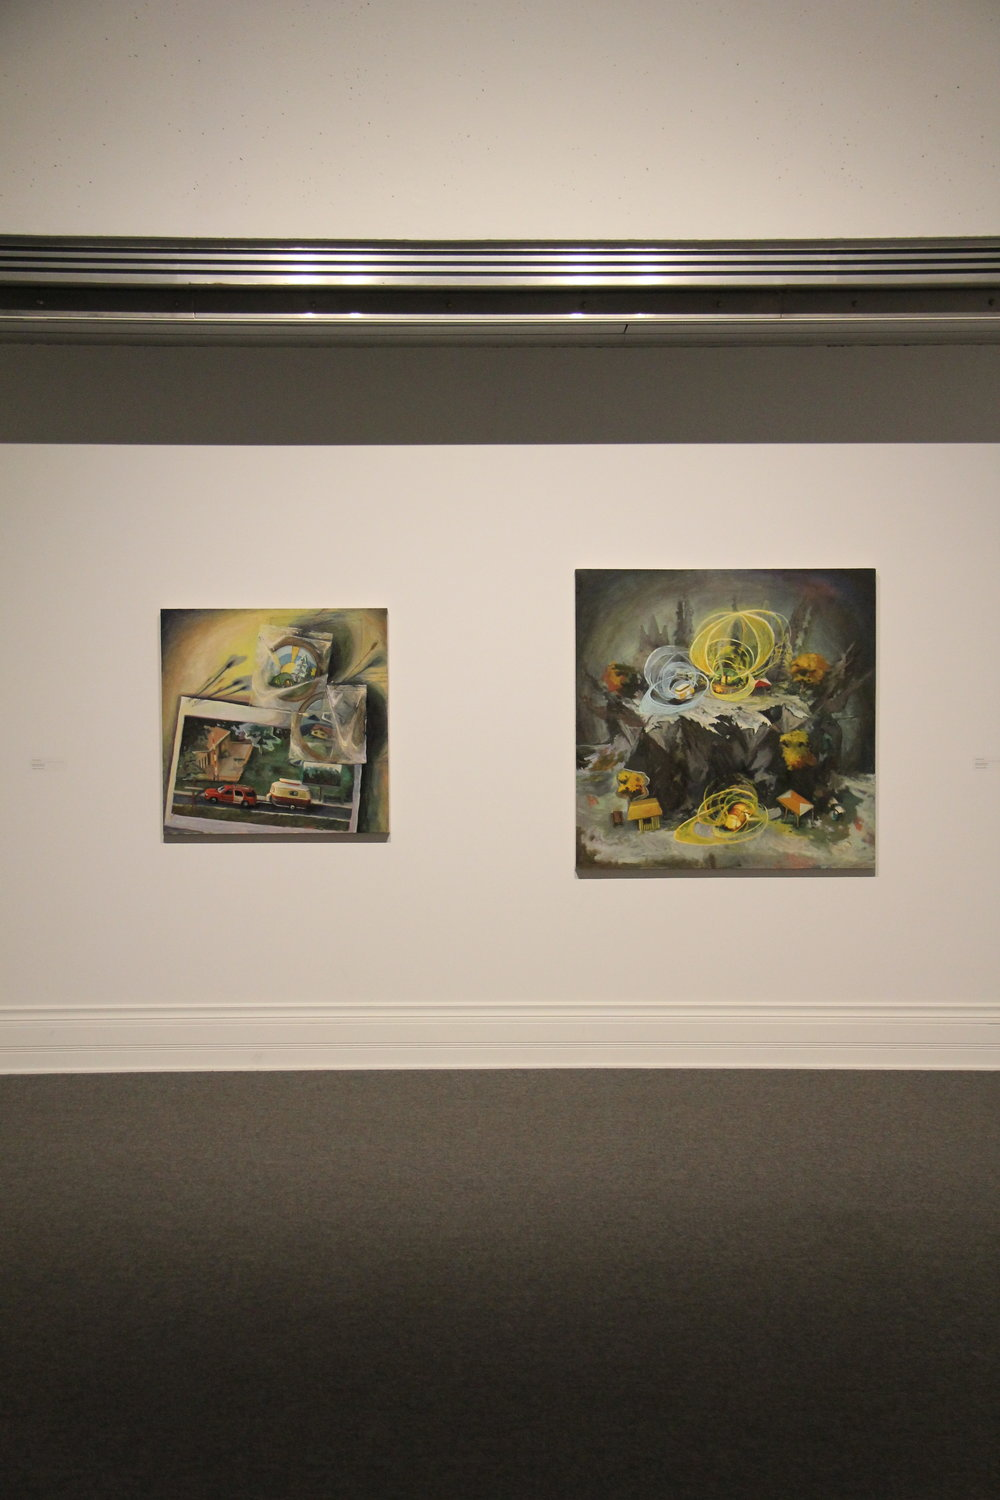 'Brave New Worlds' at Museum London (2013)